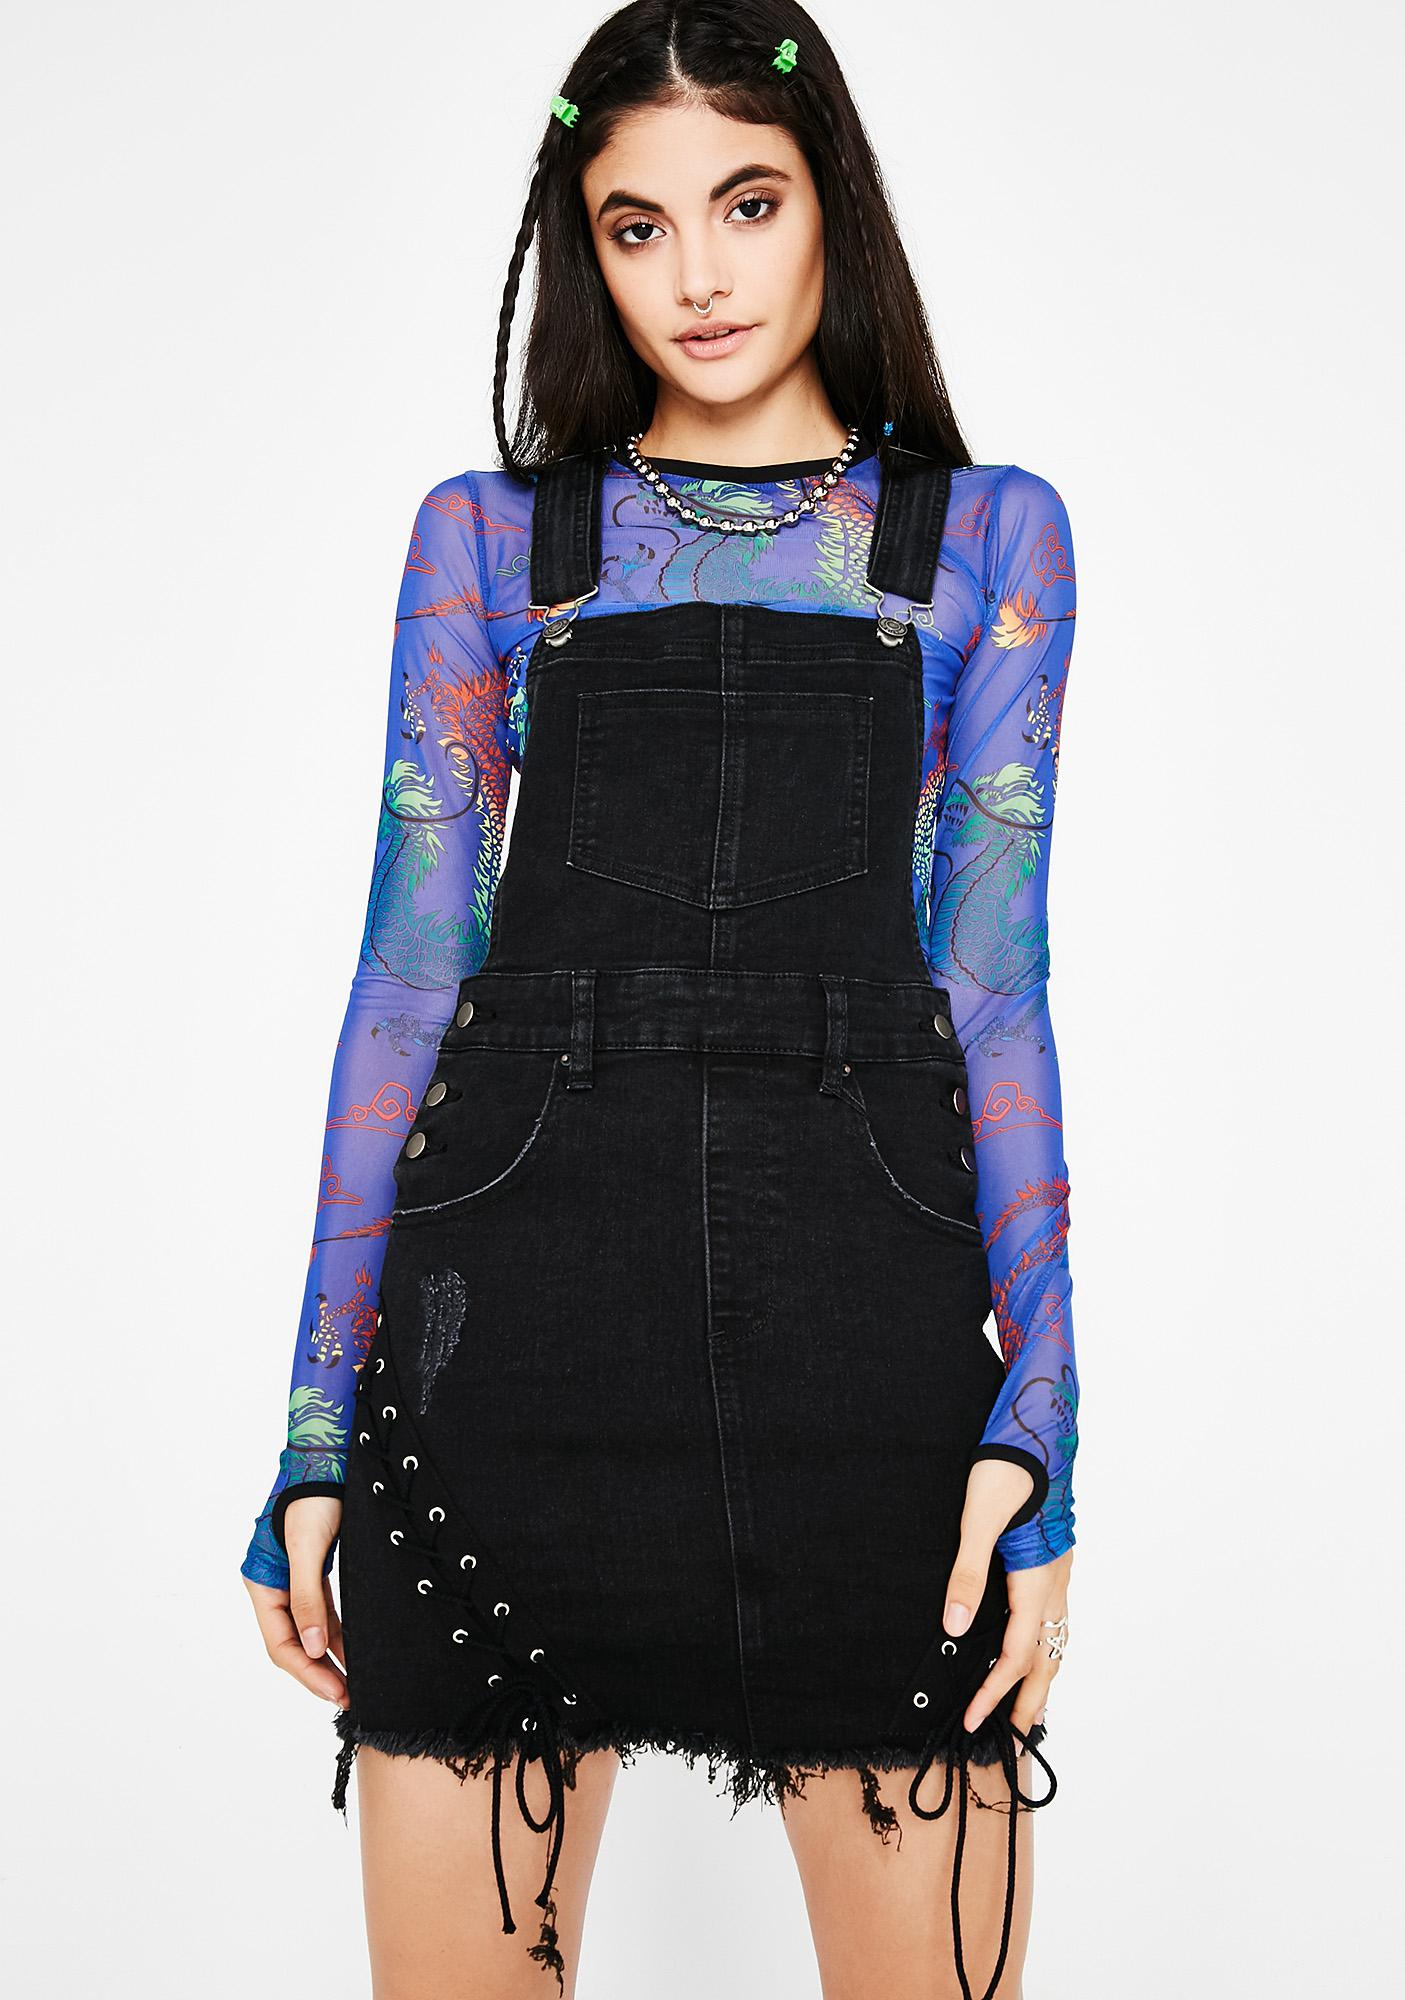 Tongue Tied Skirt Overalls